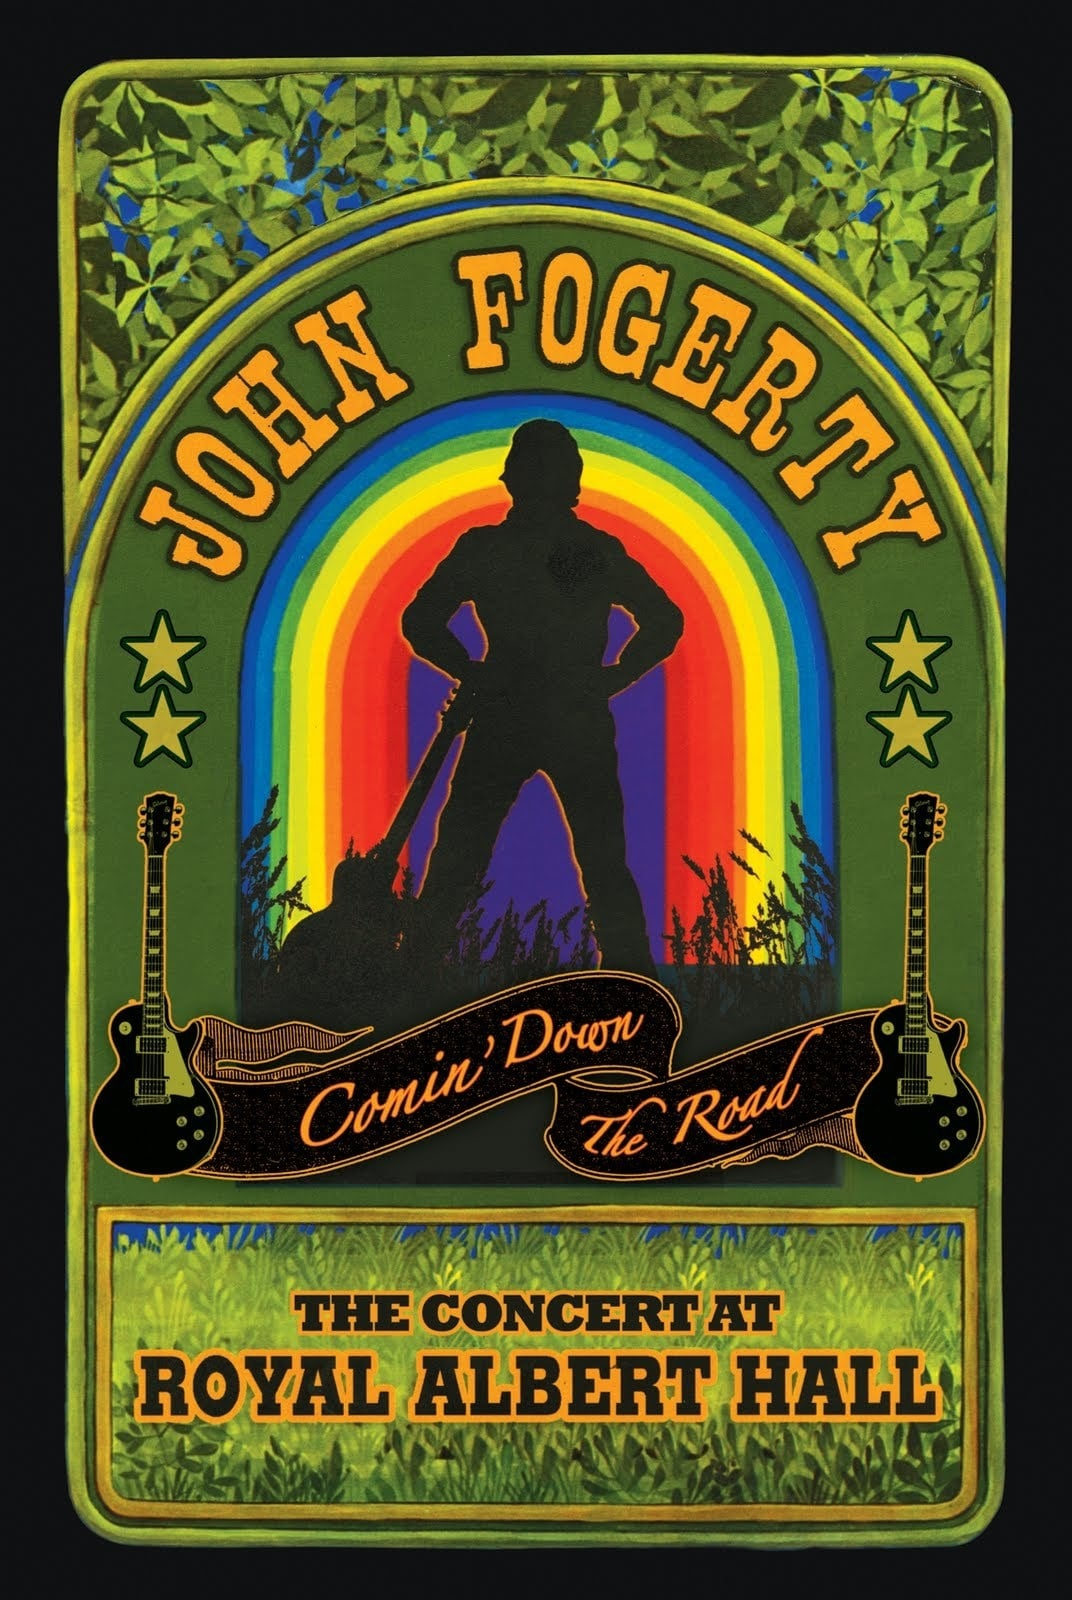 Film john fogerty comin down the road the concert at for Door 4 royal albert hall